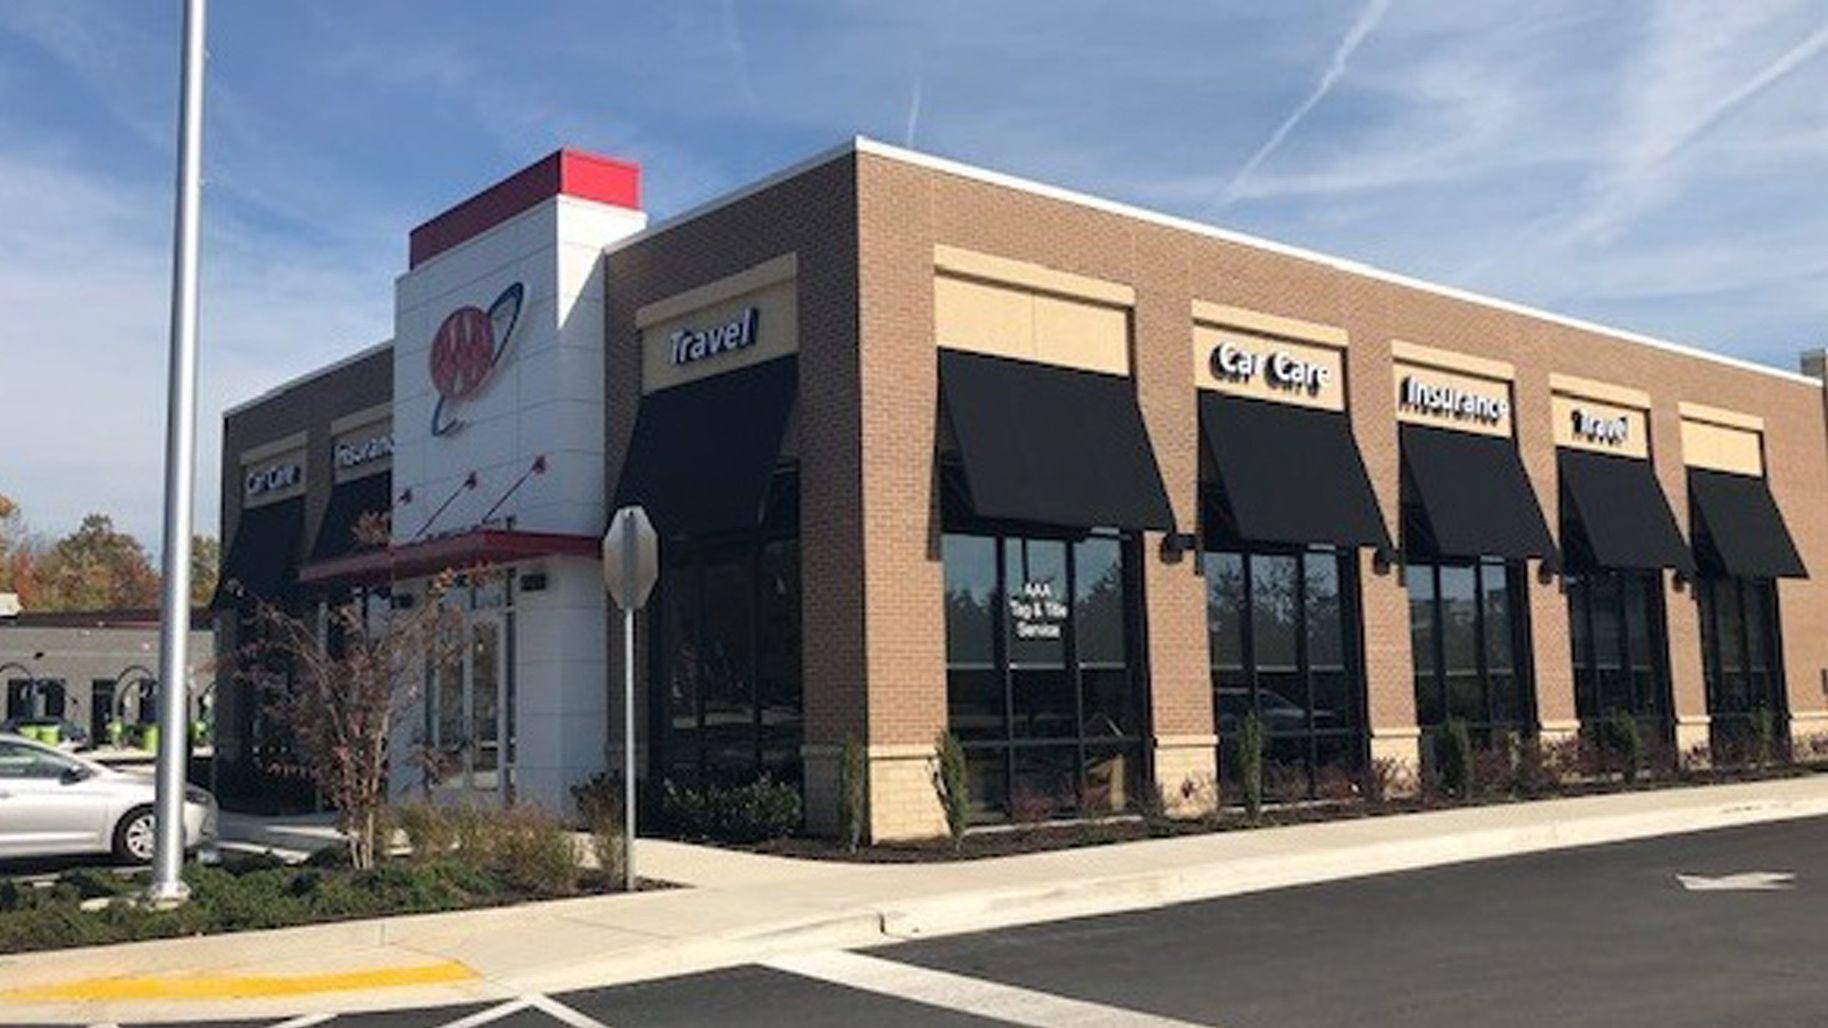 aaa opens new abingdon car care insurance and travel